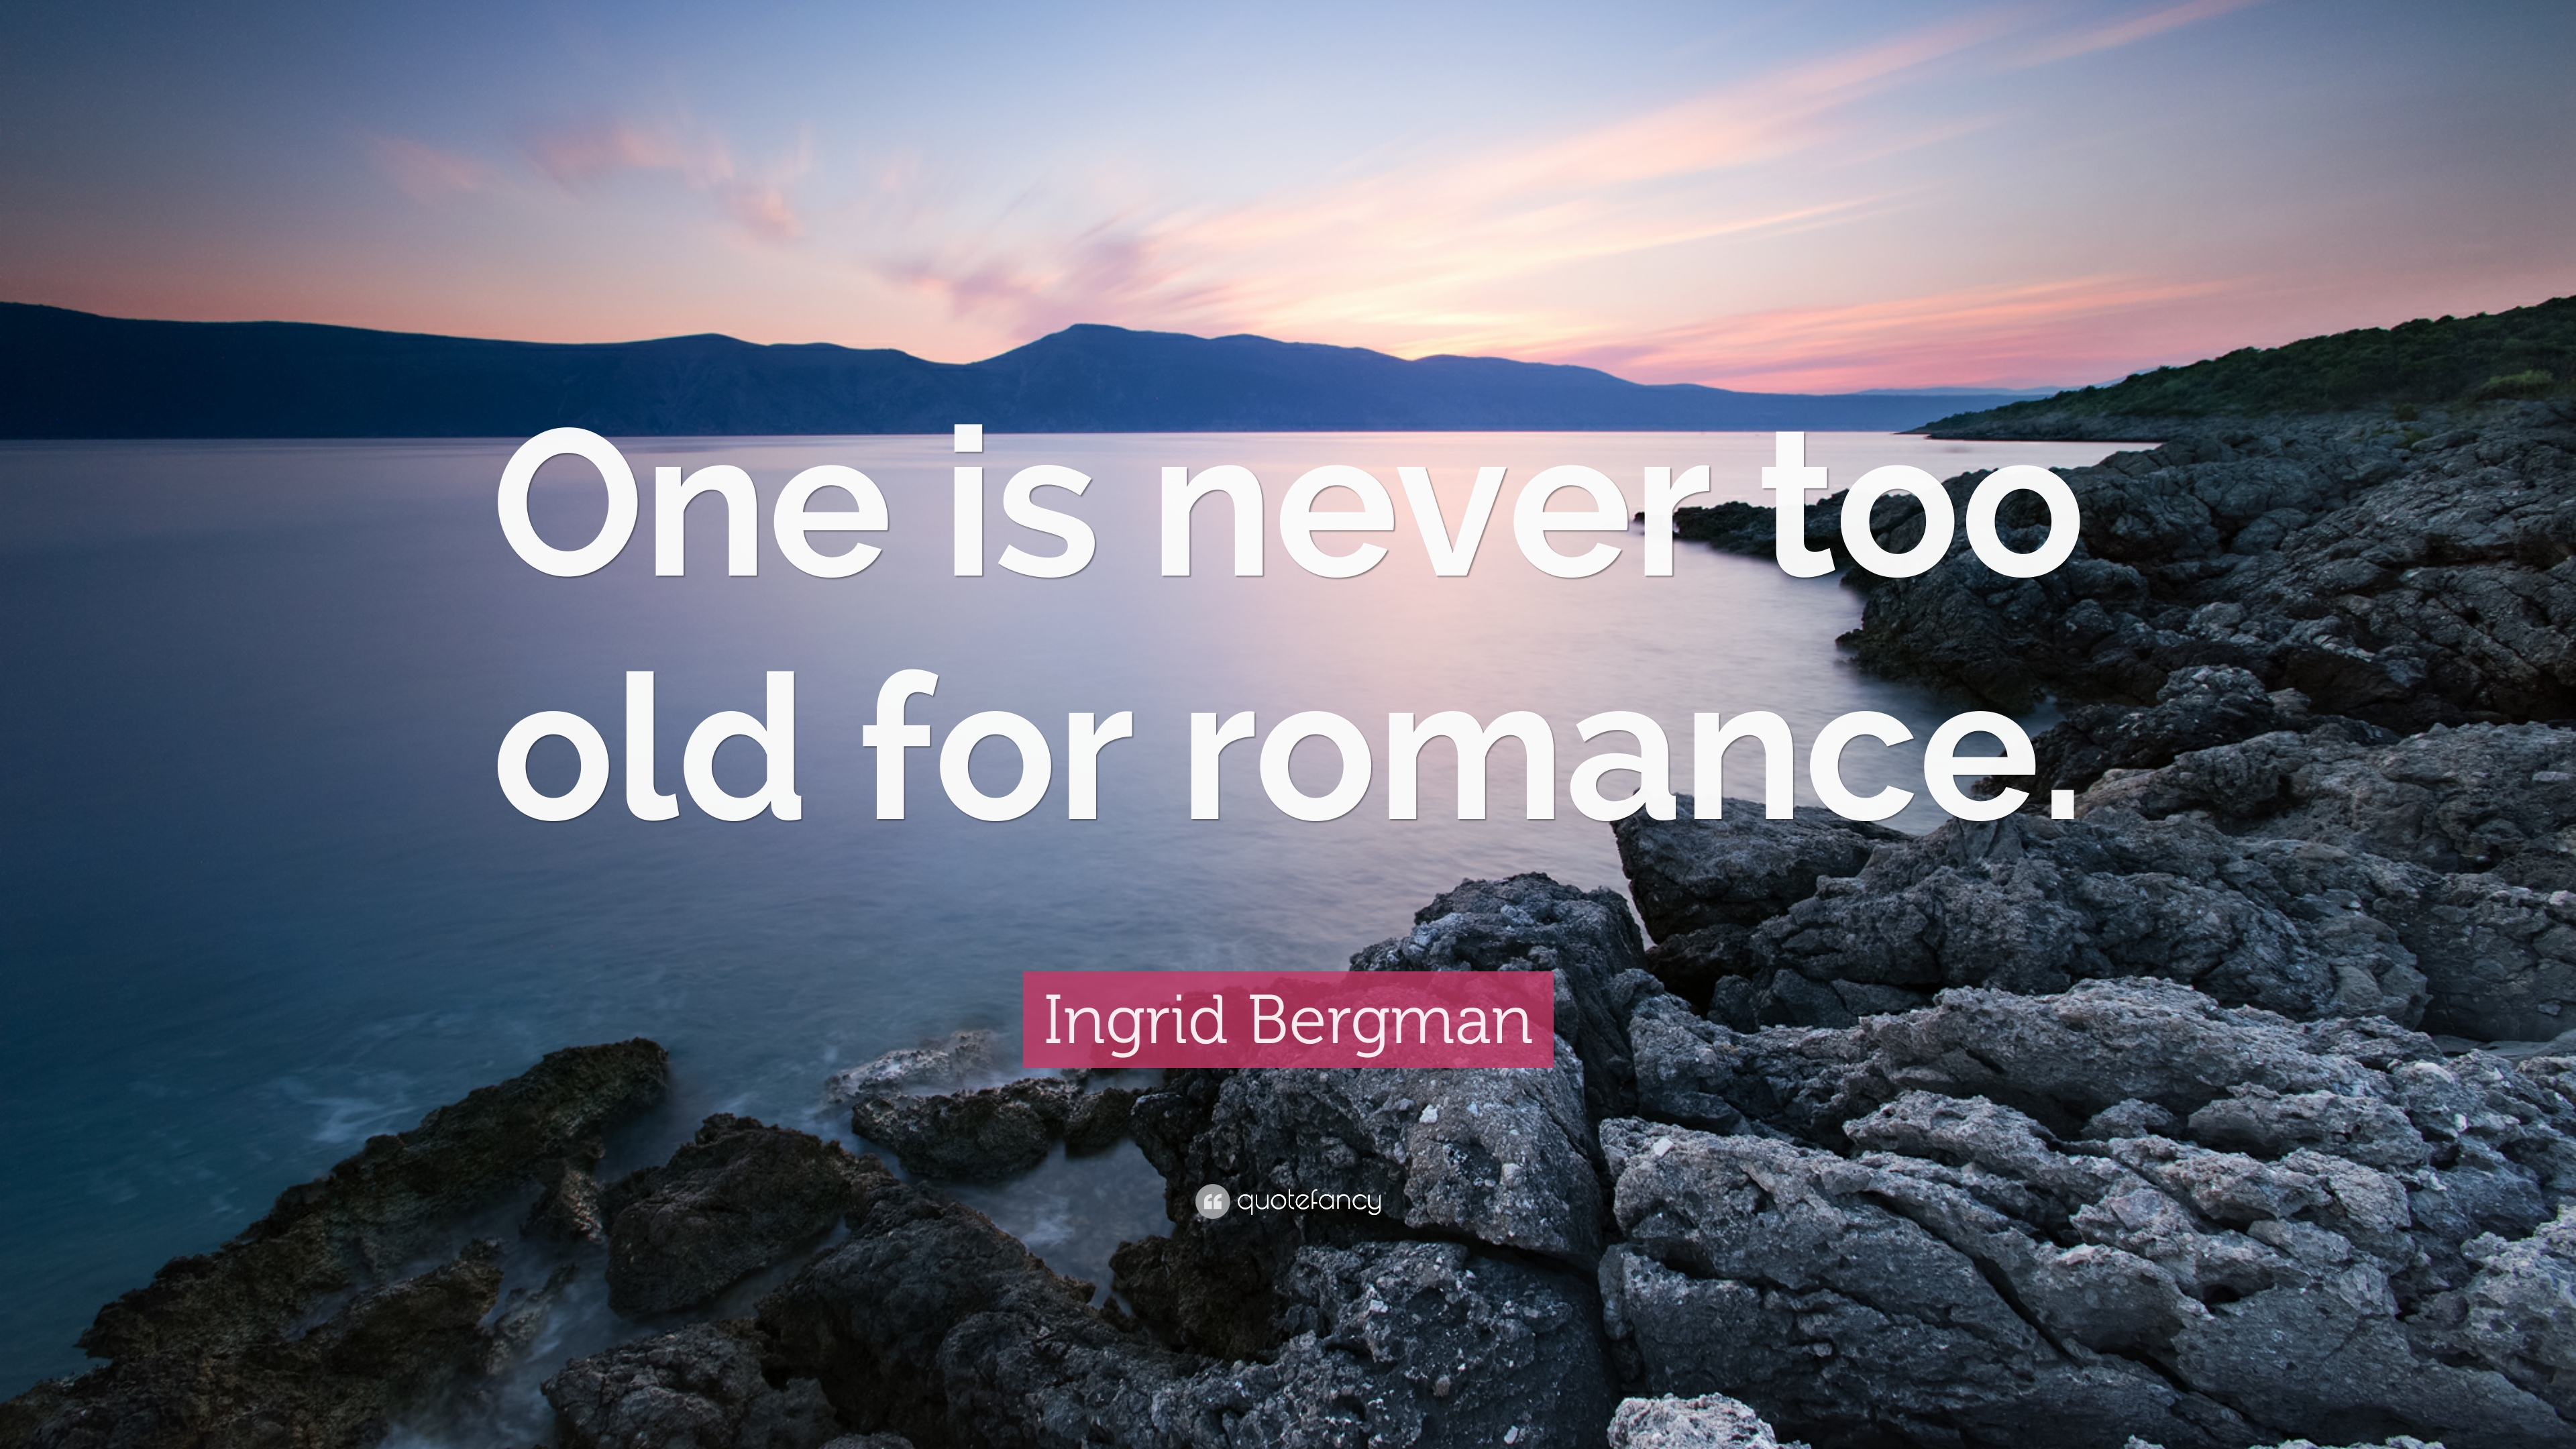 Ingrid Bergman Quote: U201cOne Is Never Too Old For Romance.u201d